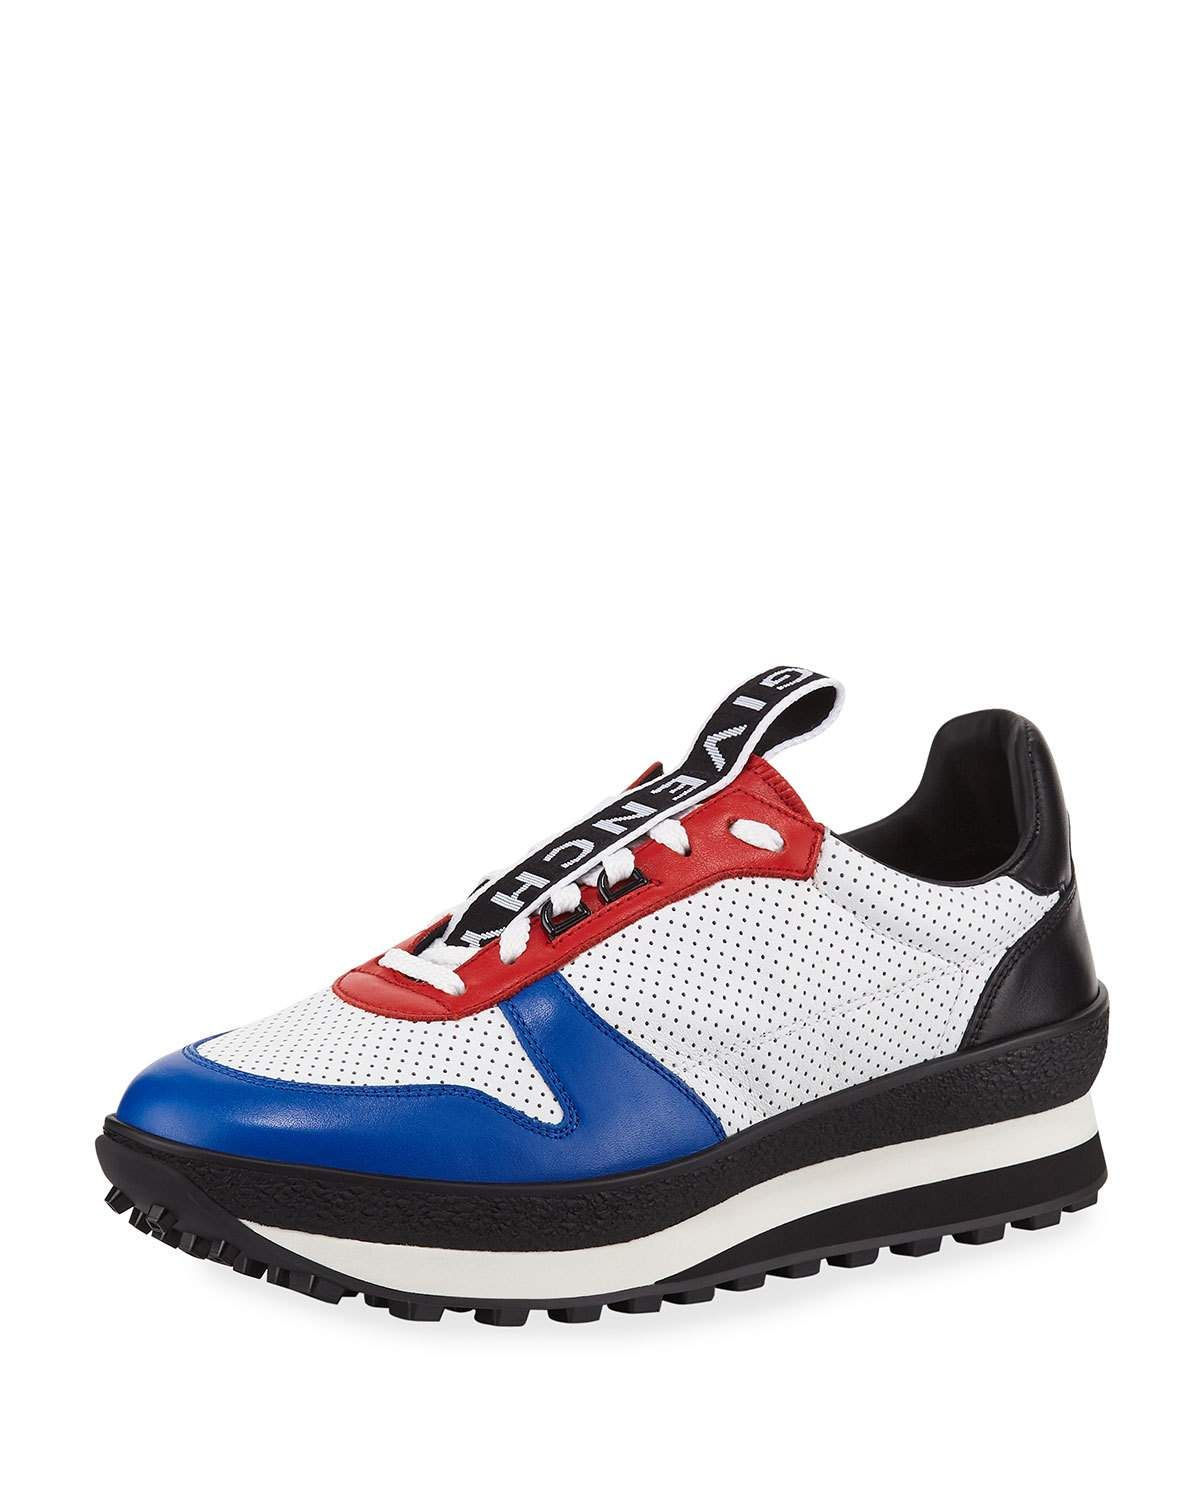 eac9399e539b78 GIVENCHY MEN'S TR3 LOW-TOP LEATHER RUNNING SNEAKERS. #givenchy #shoes